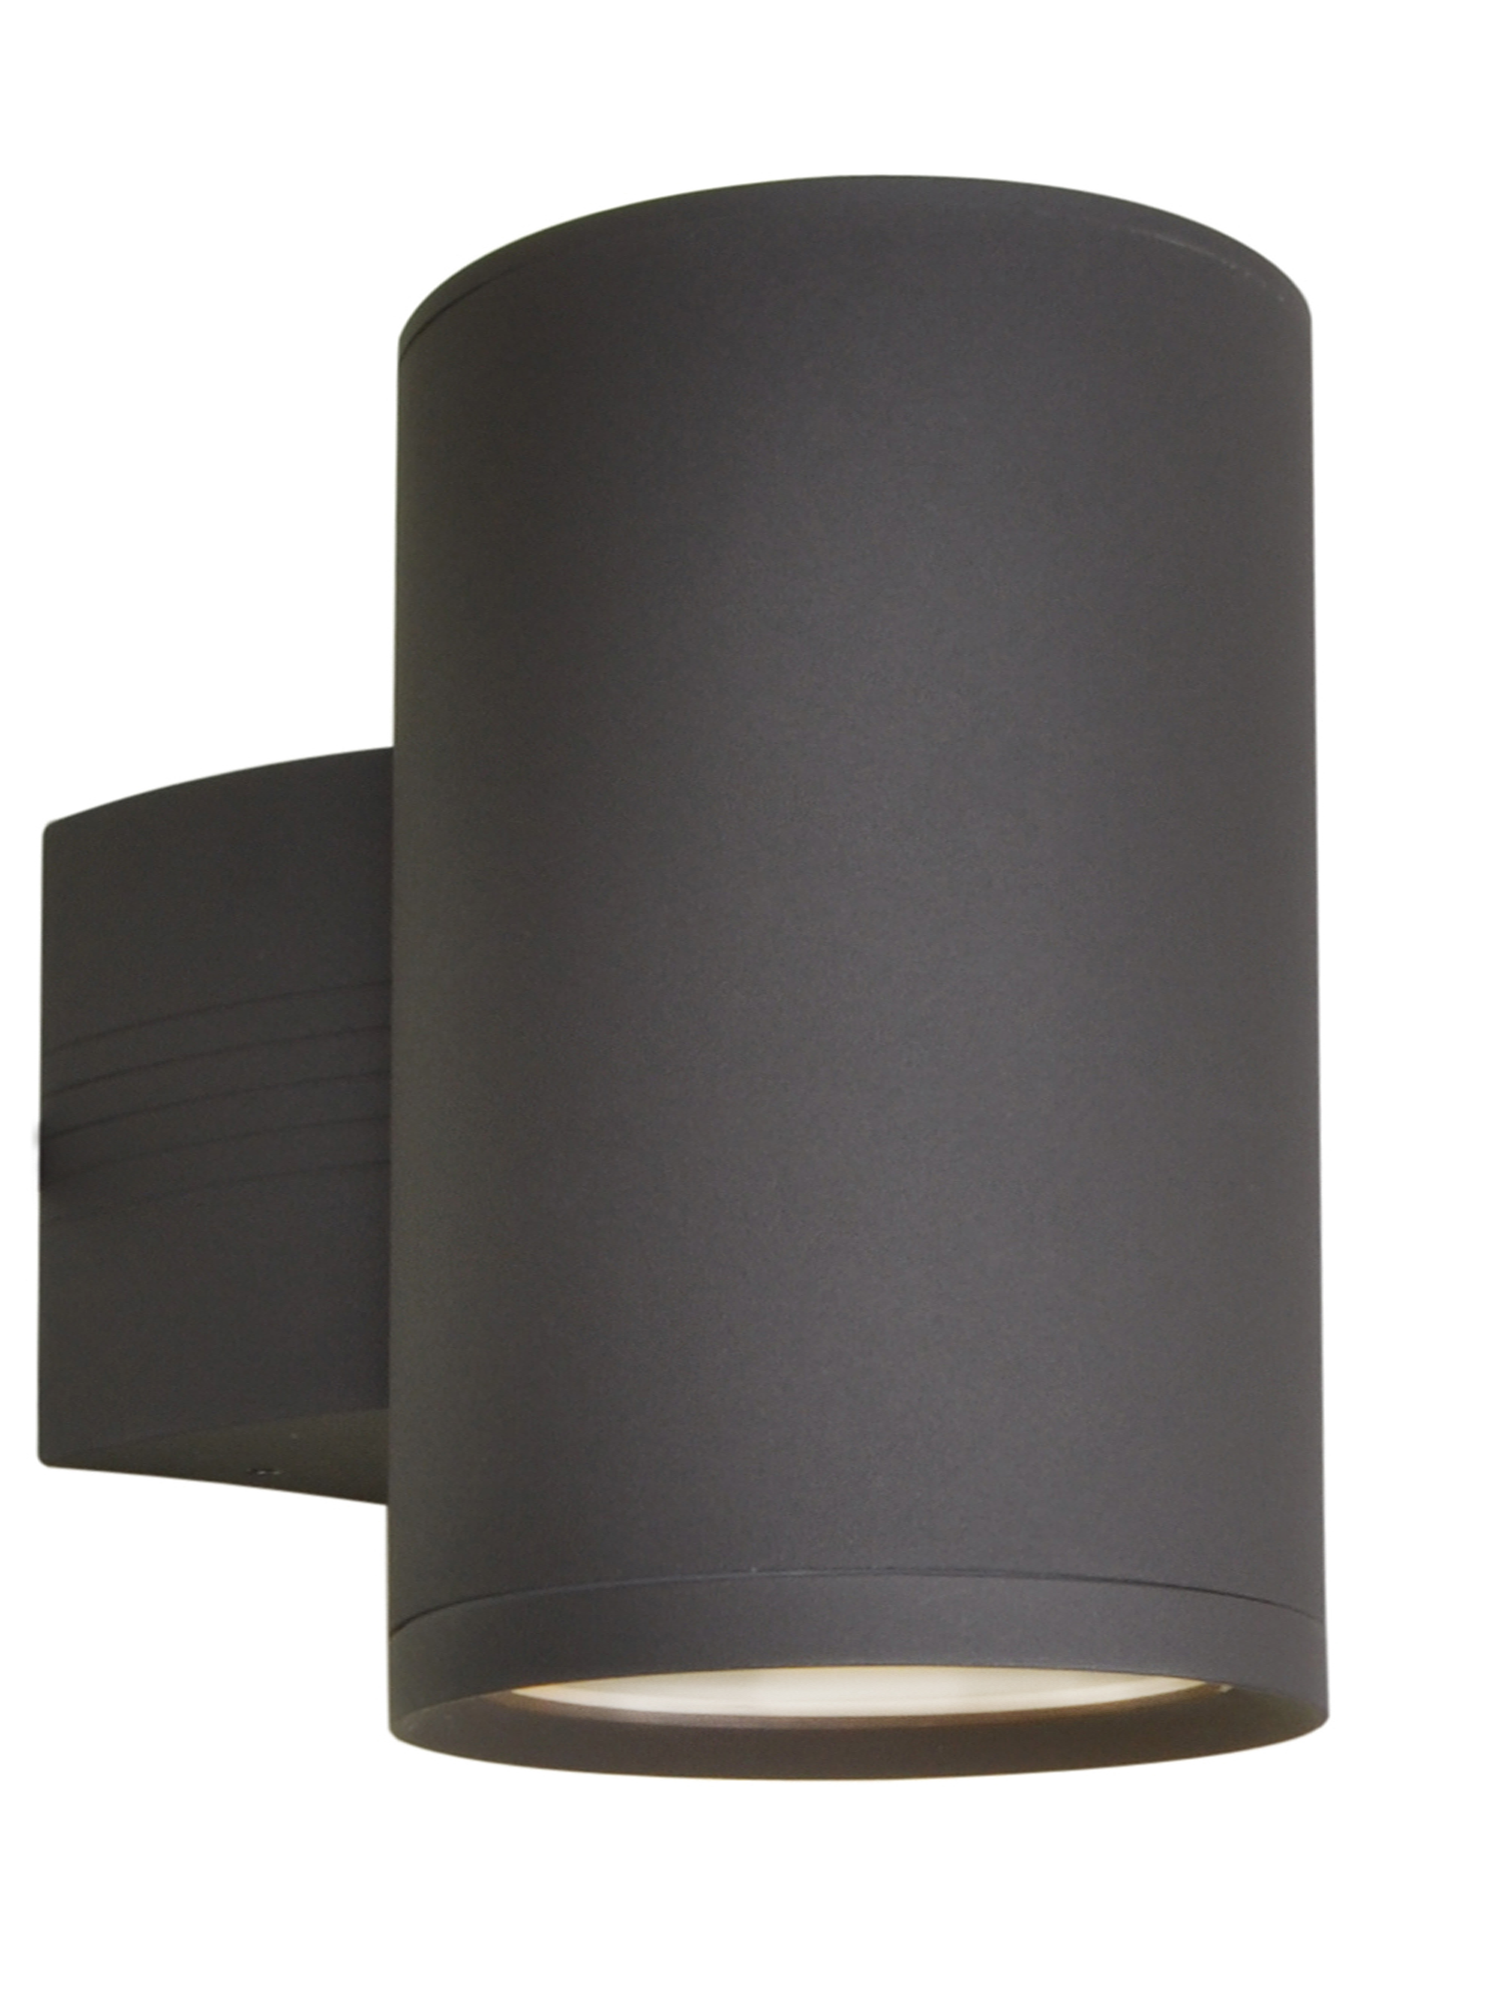 Lightray plain outdoor wall light by maxim lighting 6101abz lightray plain outdoor wall light download image aloadofball Gallery